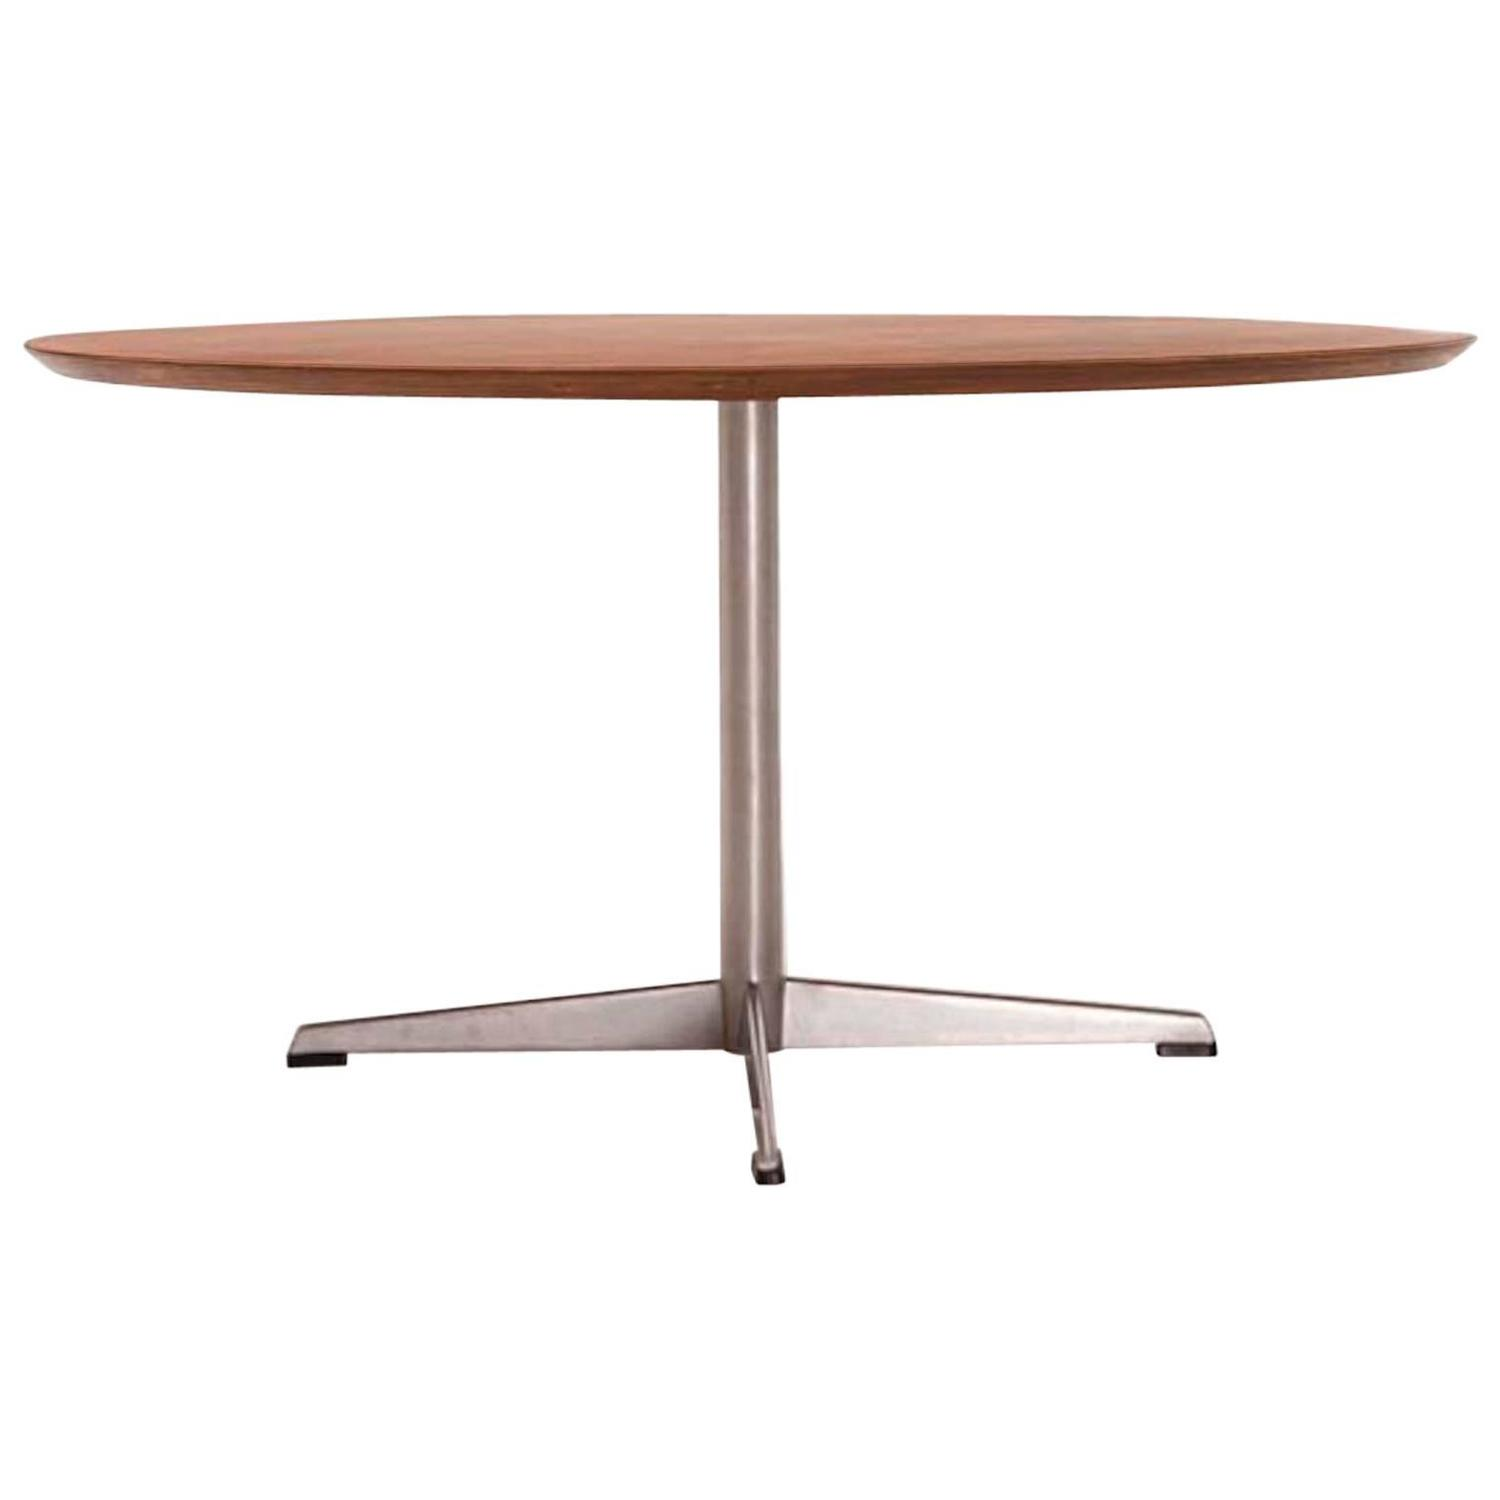 Vintage Danish Modern Coffee Or Cocktail Table By Arne Jacobson At 1stdibs